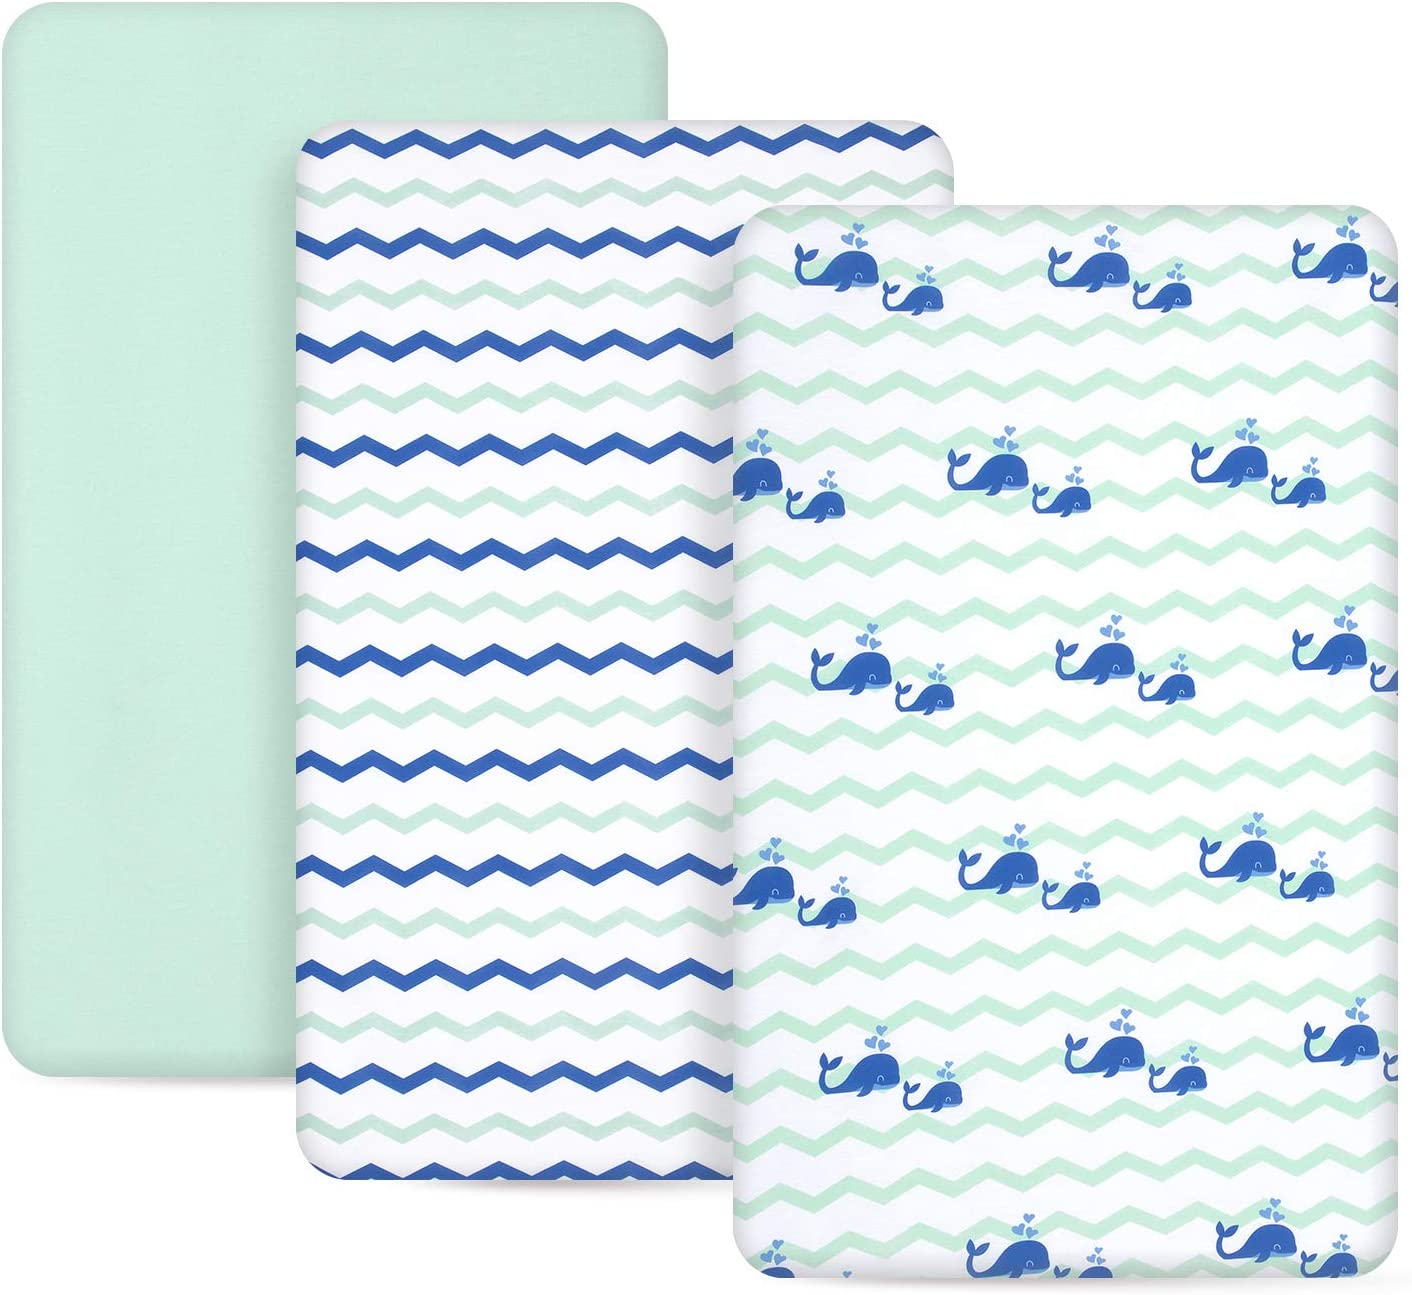 TILLYOU Jersey Knit Pack N Play Sheets, 170 GSM Thicker Softer Mini Crib Sheets Set Unisex, Ultra-Soft Breathable Playard Playpen Sheets, Ocean Theme